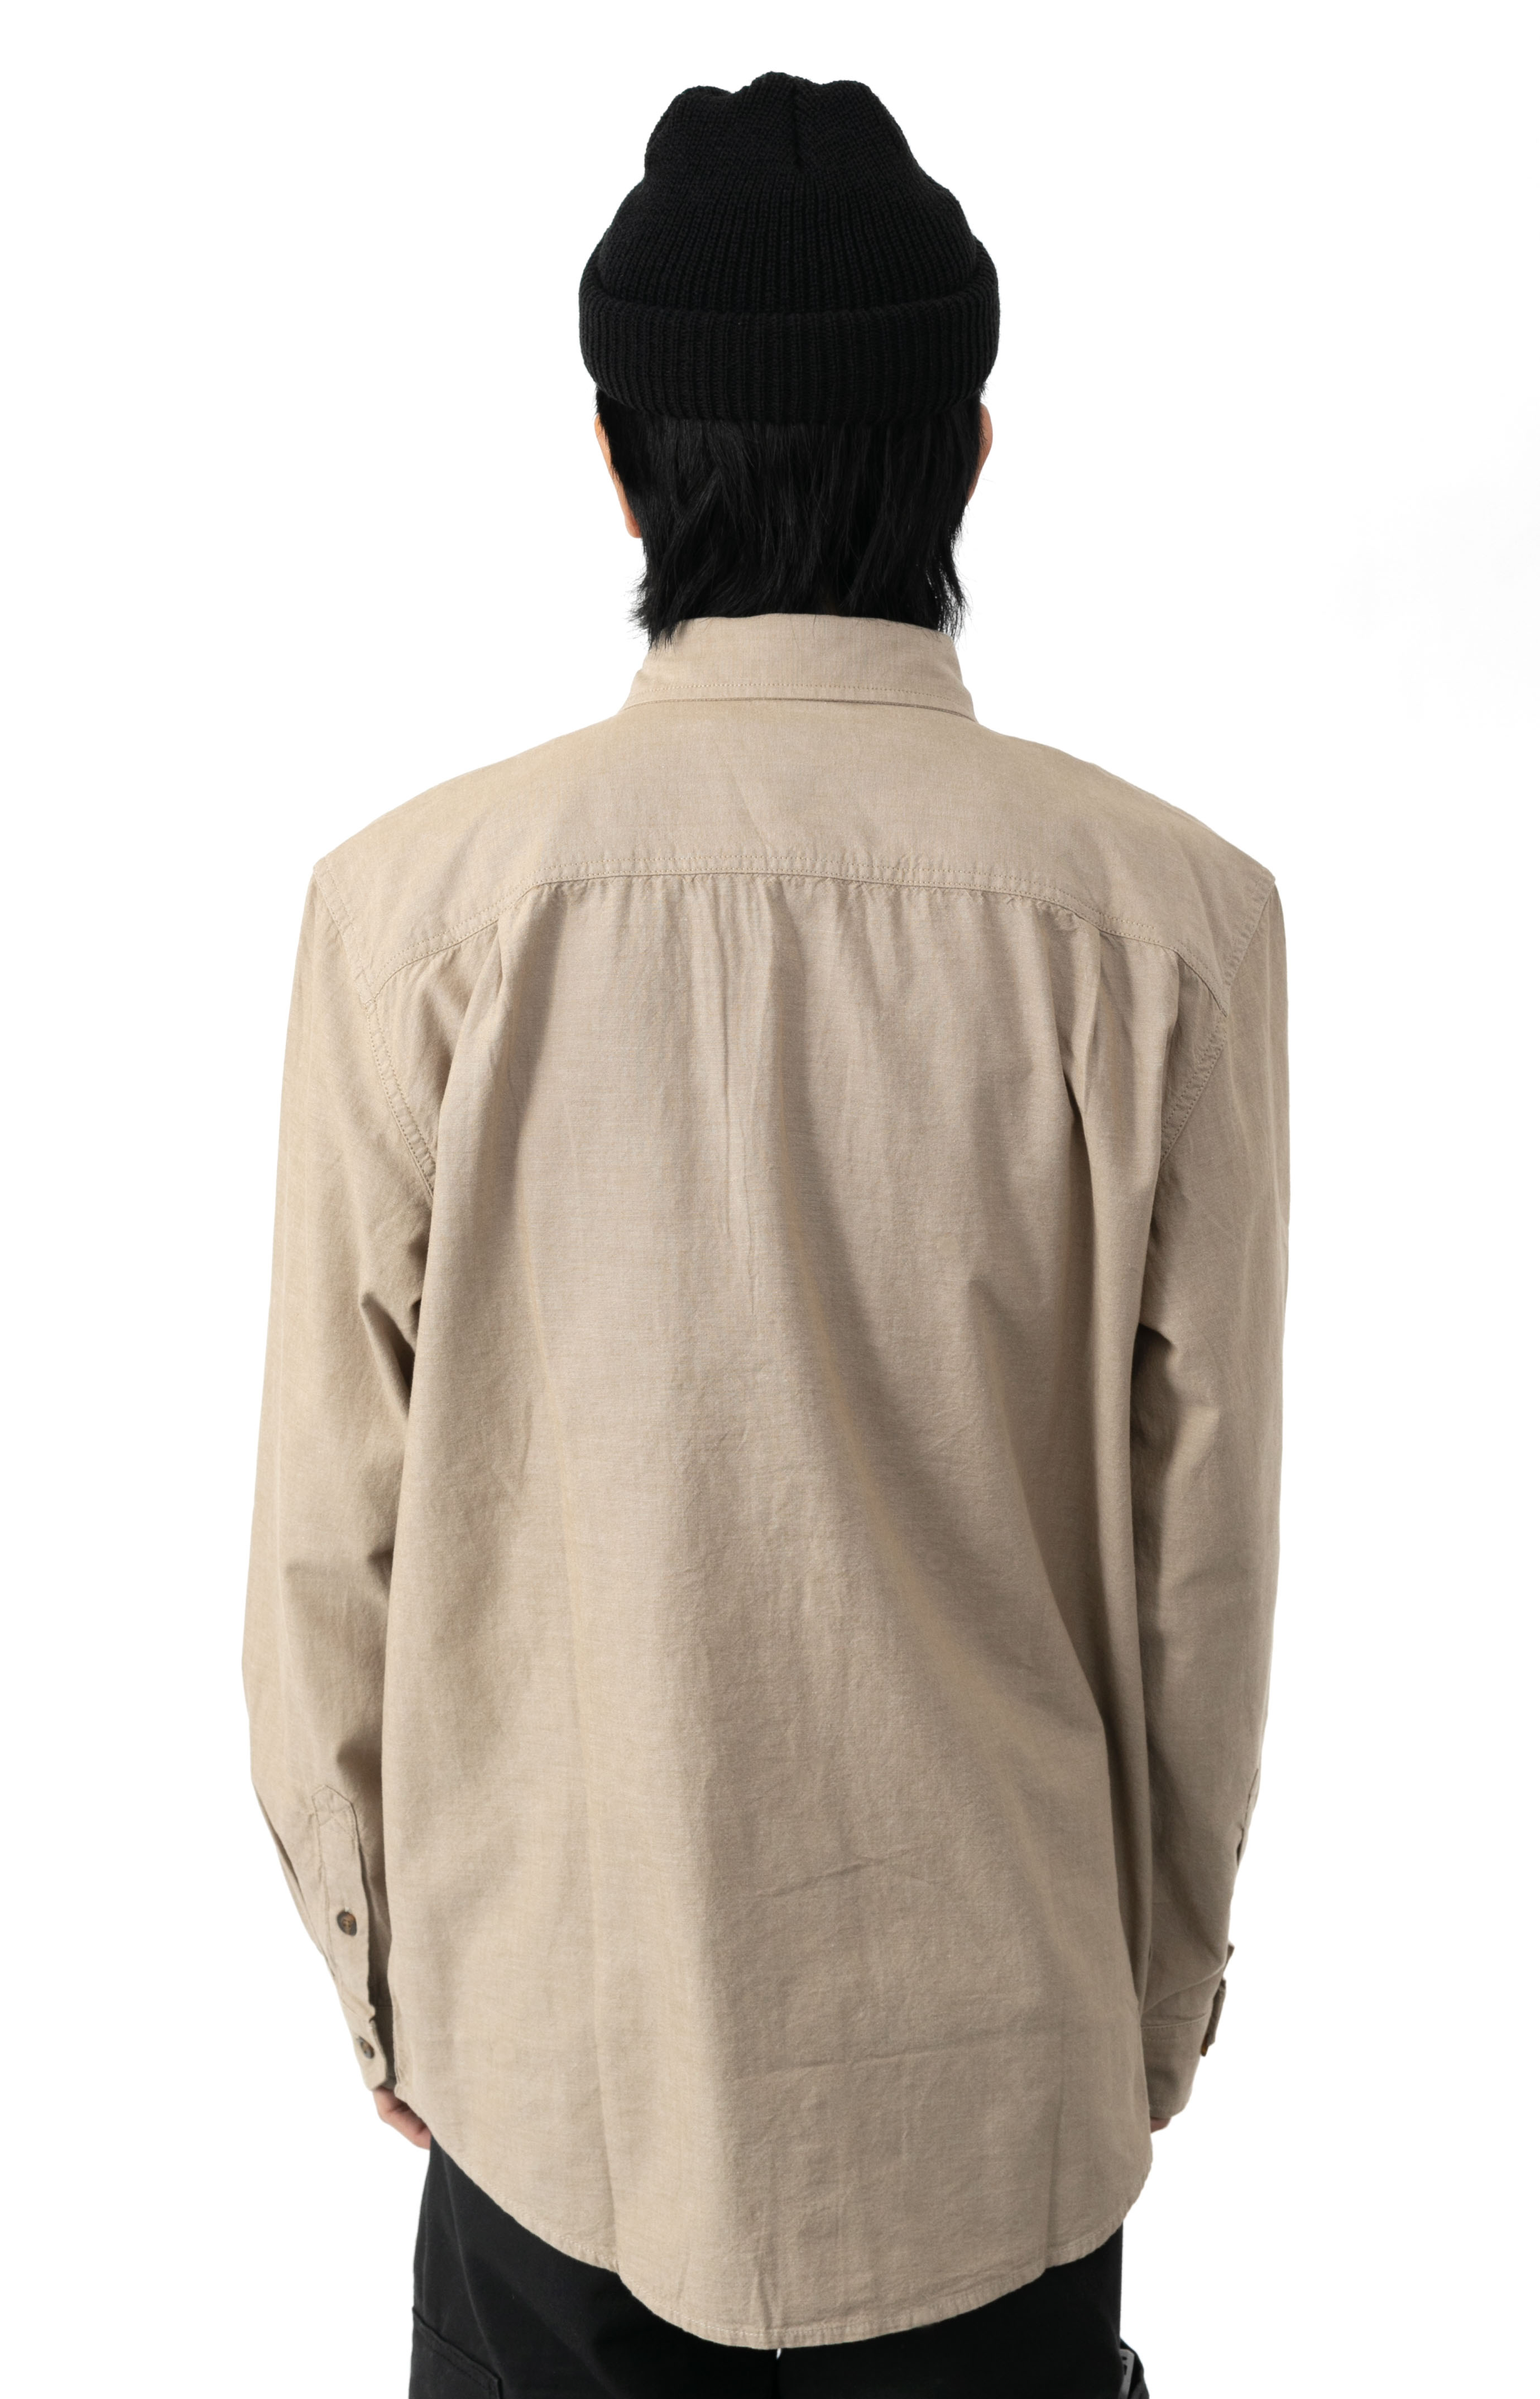 (104368) Original Fit Midweight L/S Button-Up Shirt - Dark Tan Chambray  3